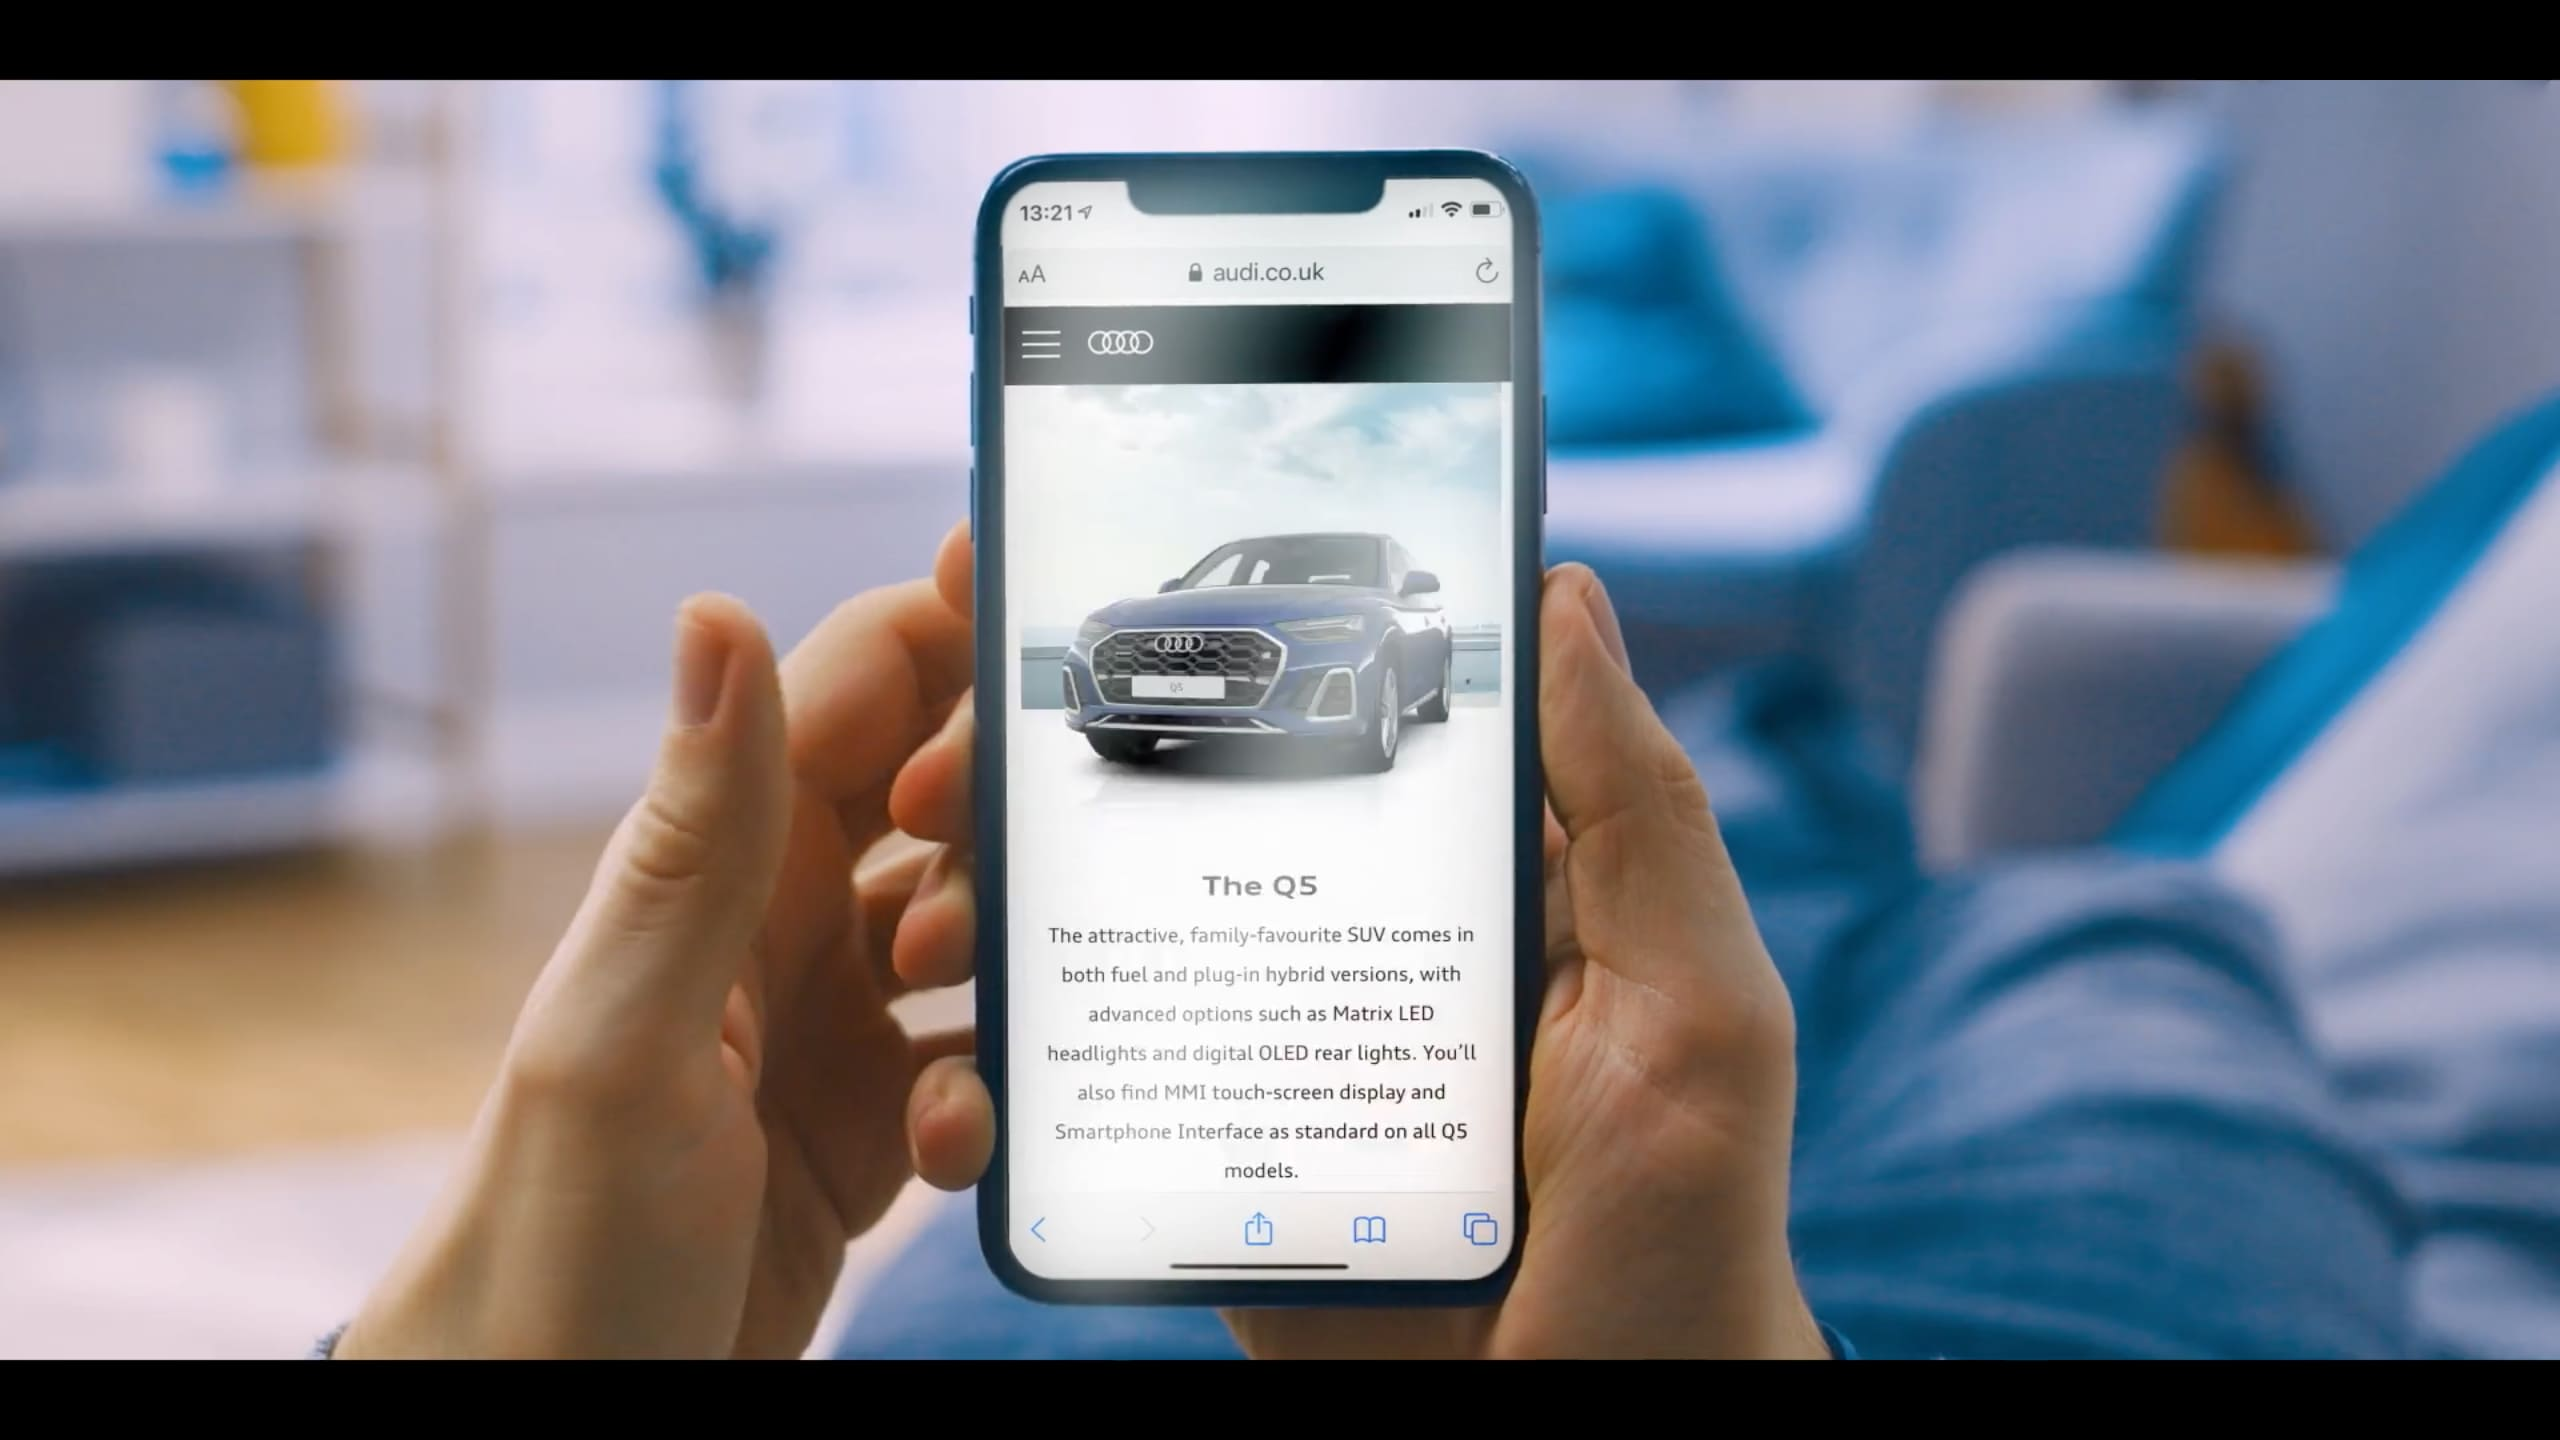 Audi UK + IBM: Bringing smarter experiences to customers